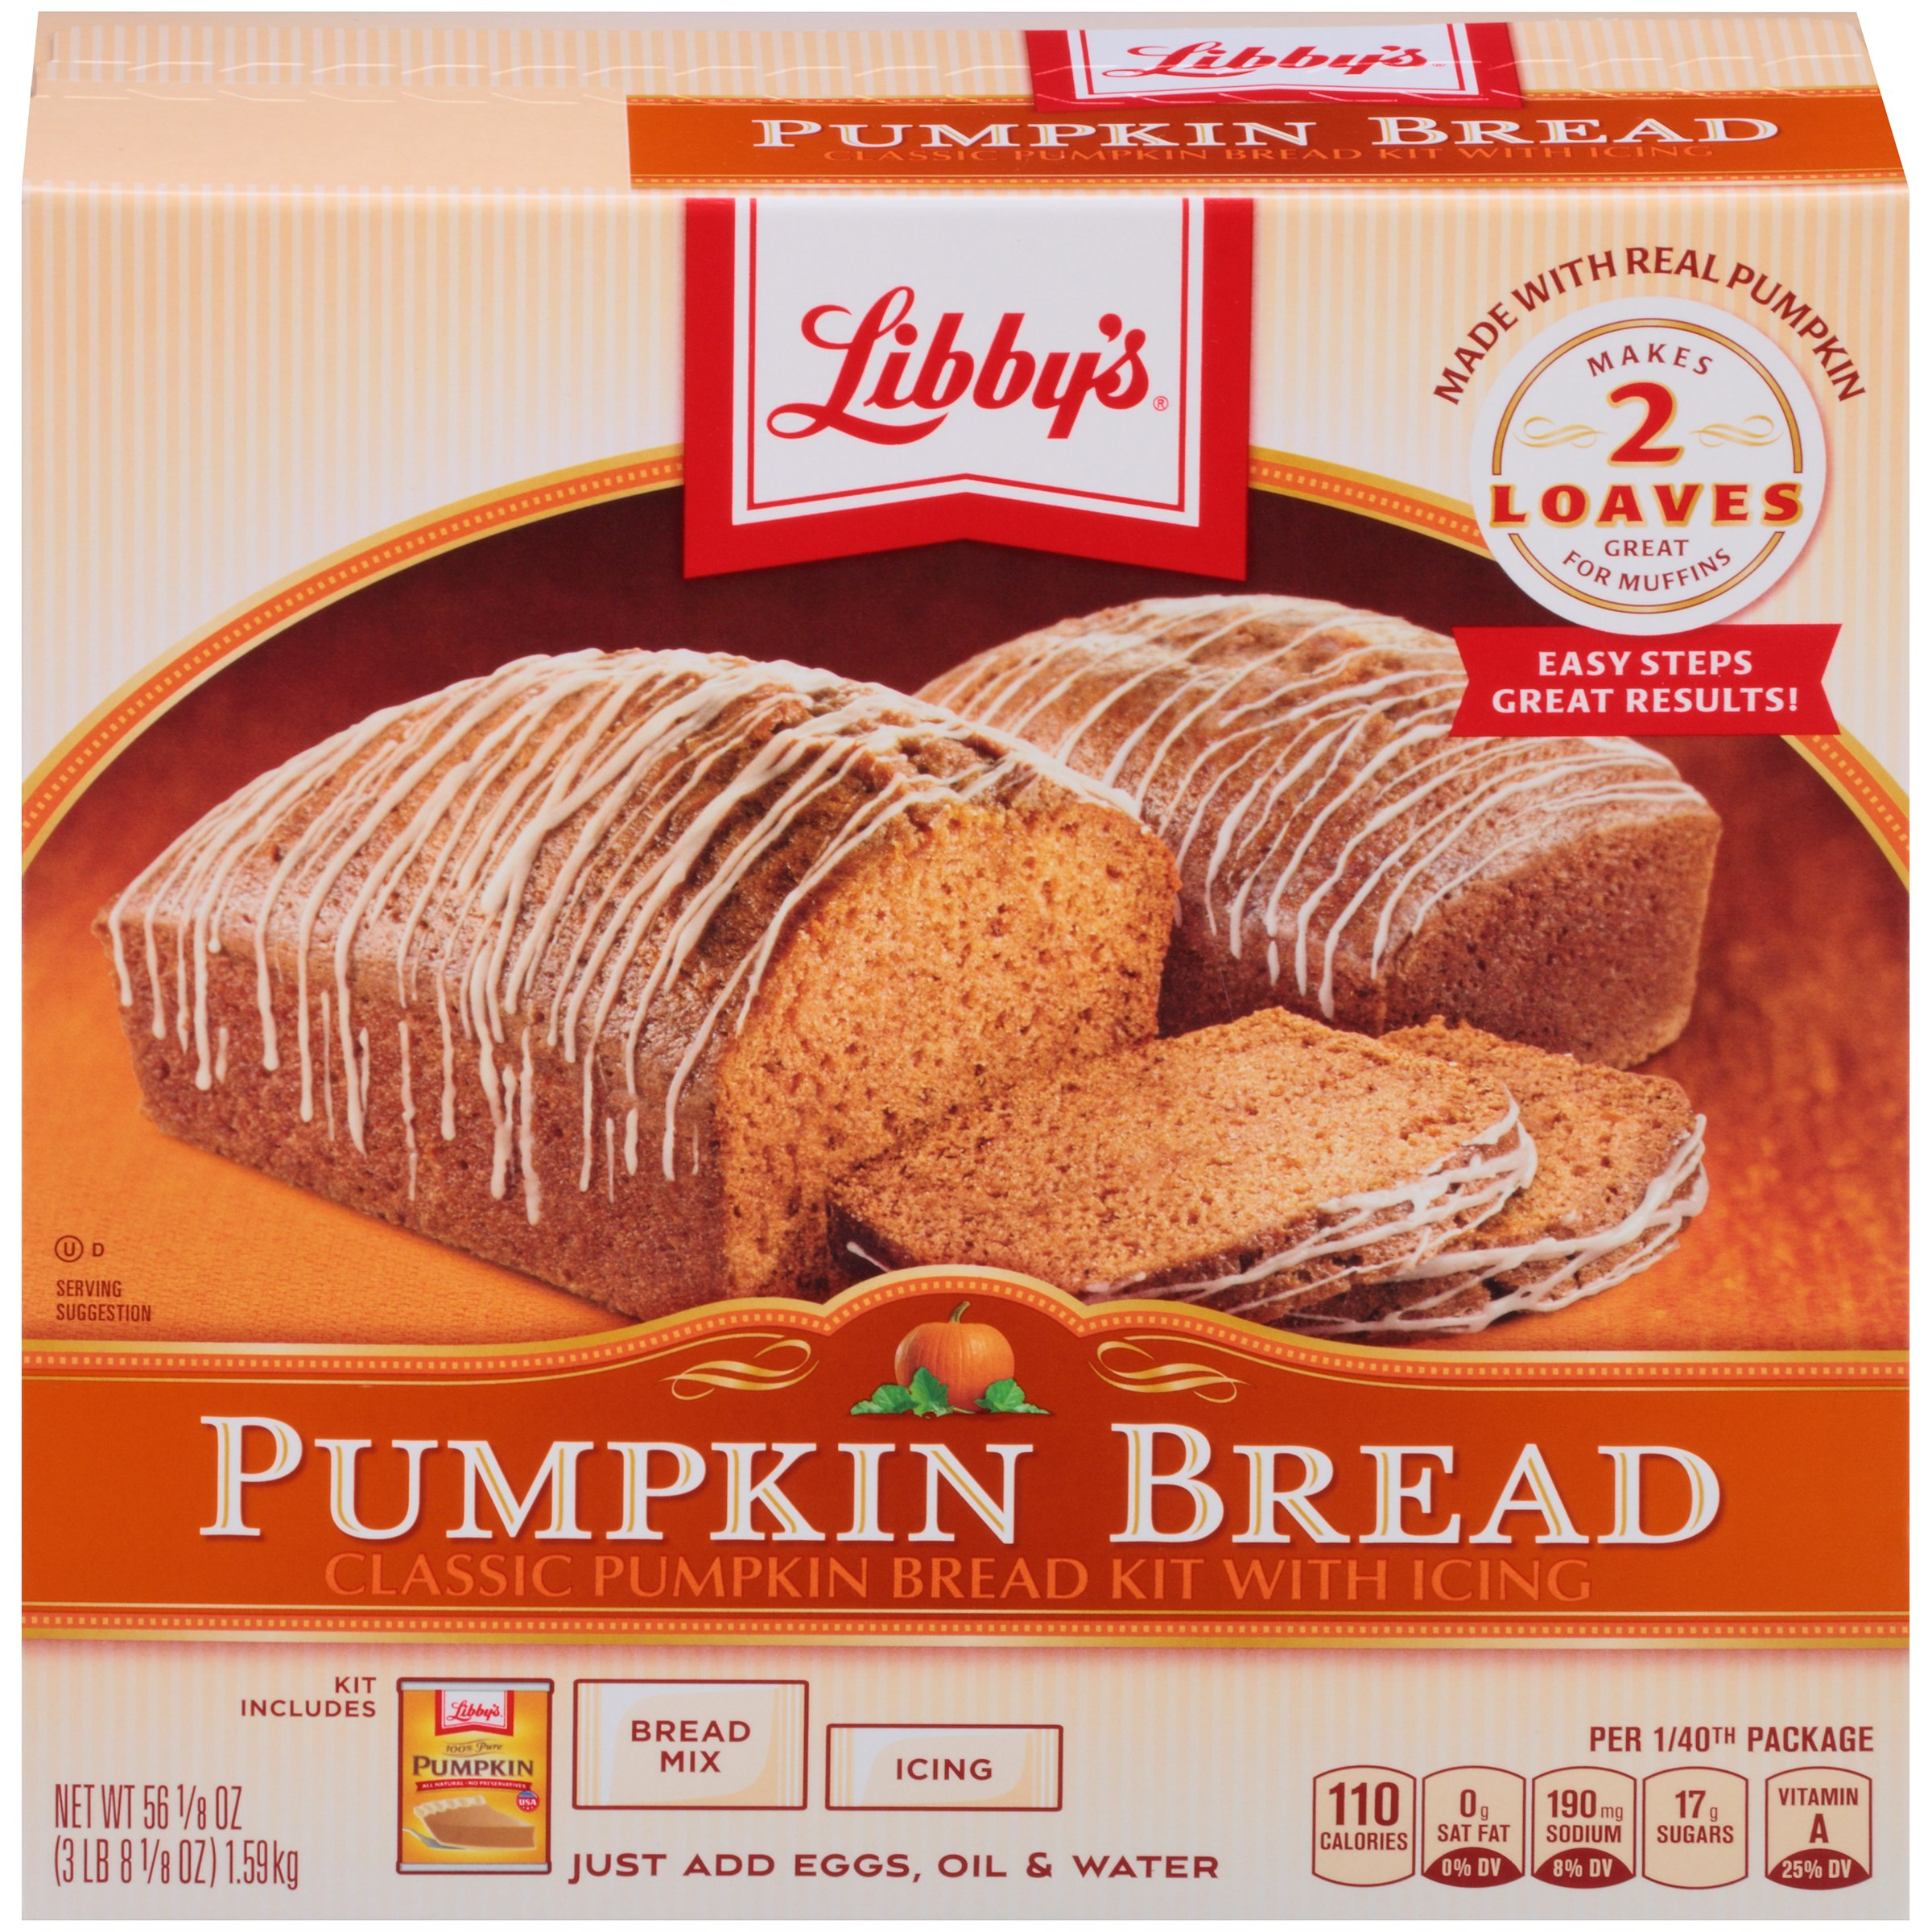 Libby's Classic Pumpkin Bread Kit with Icing, 56.1 oz Box